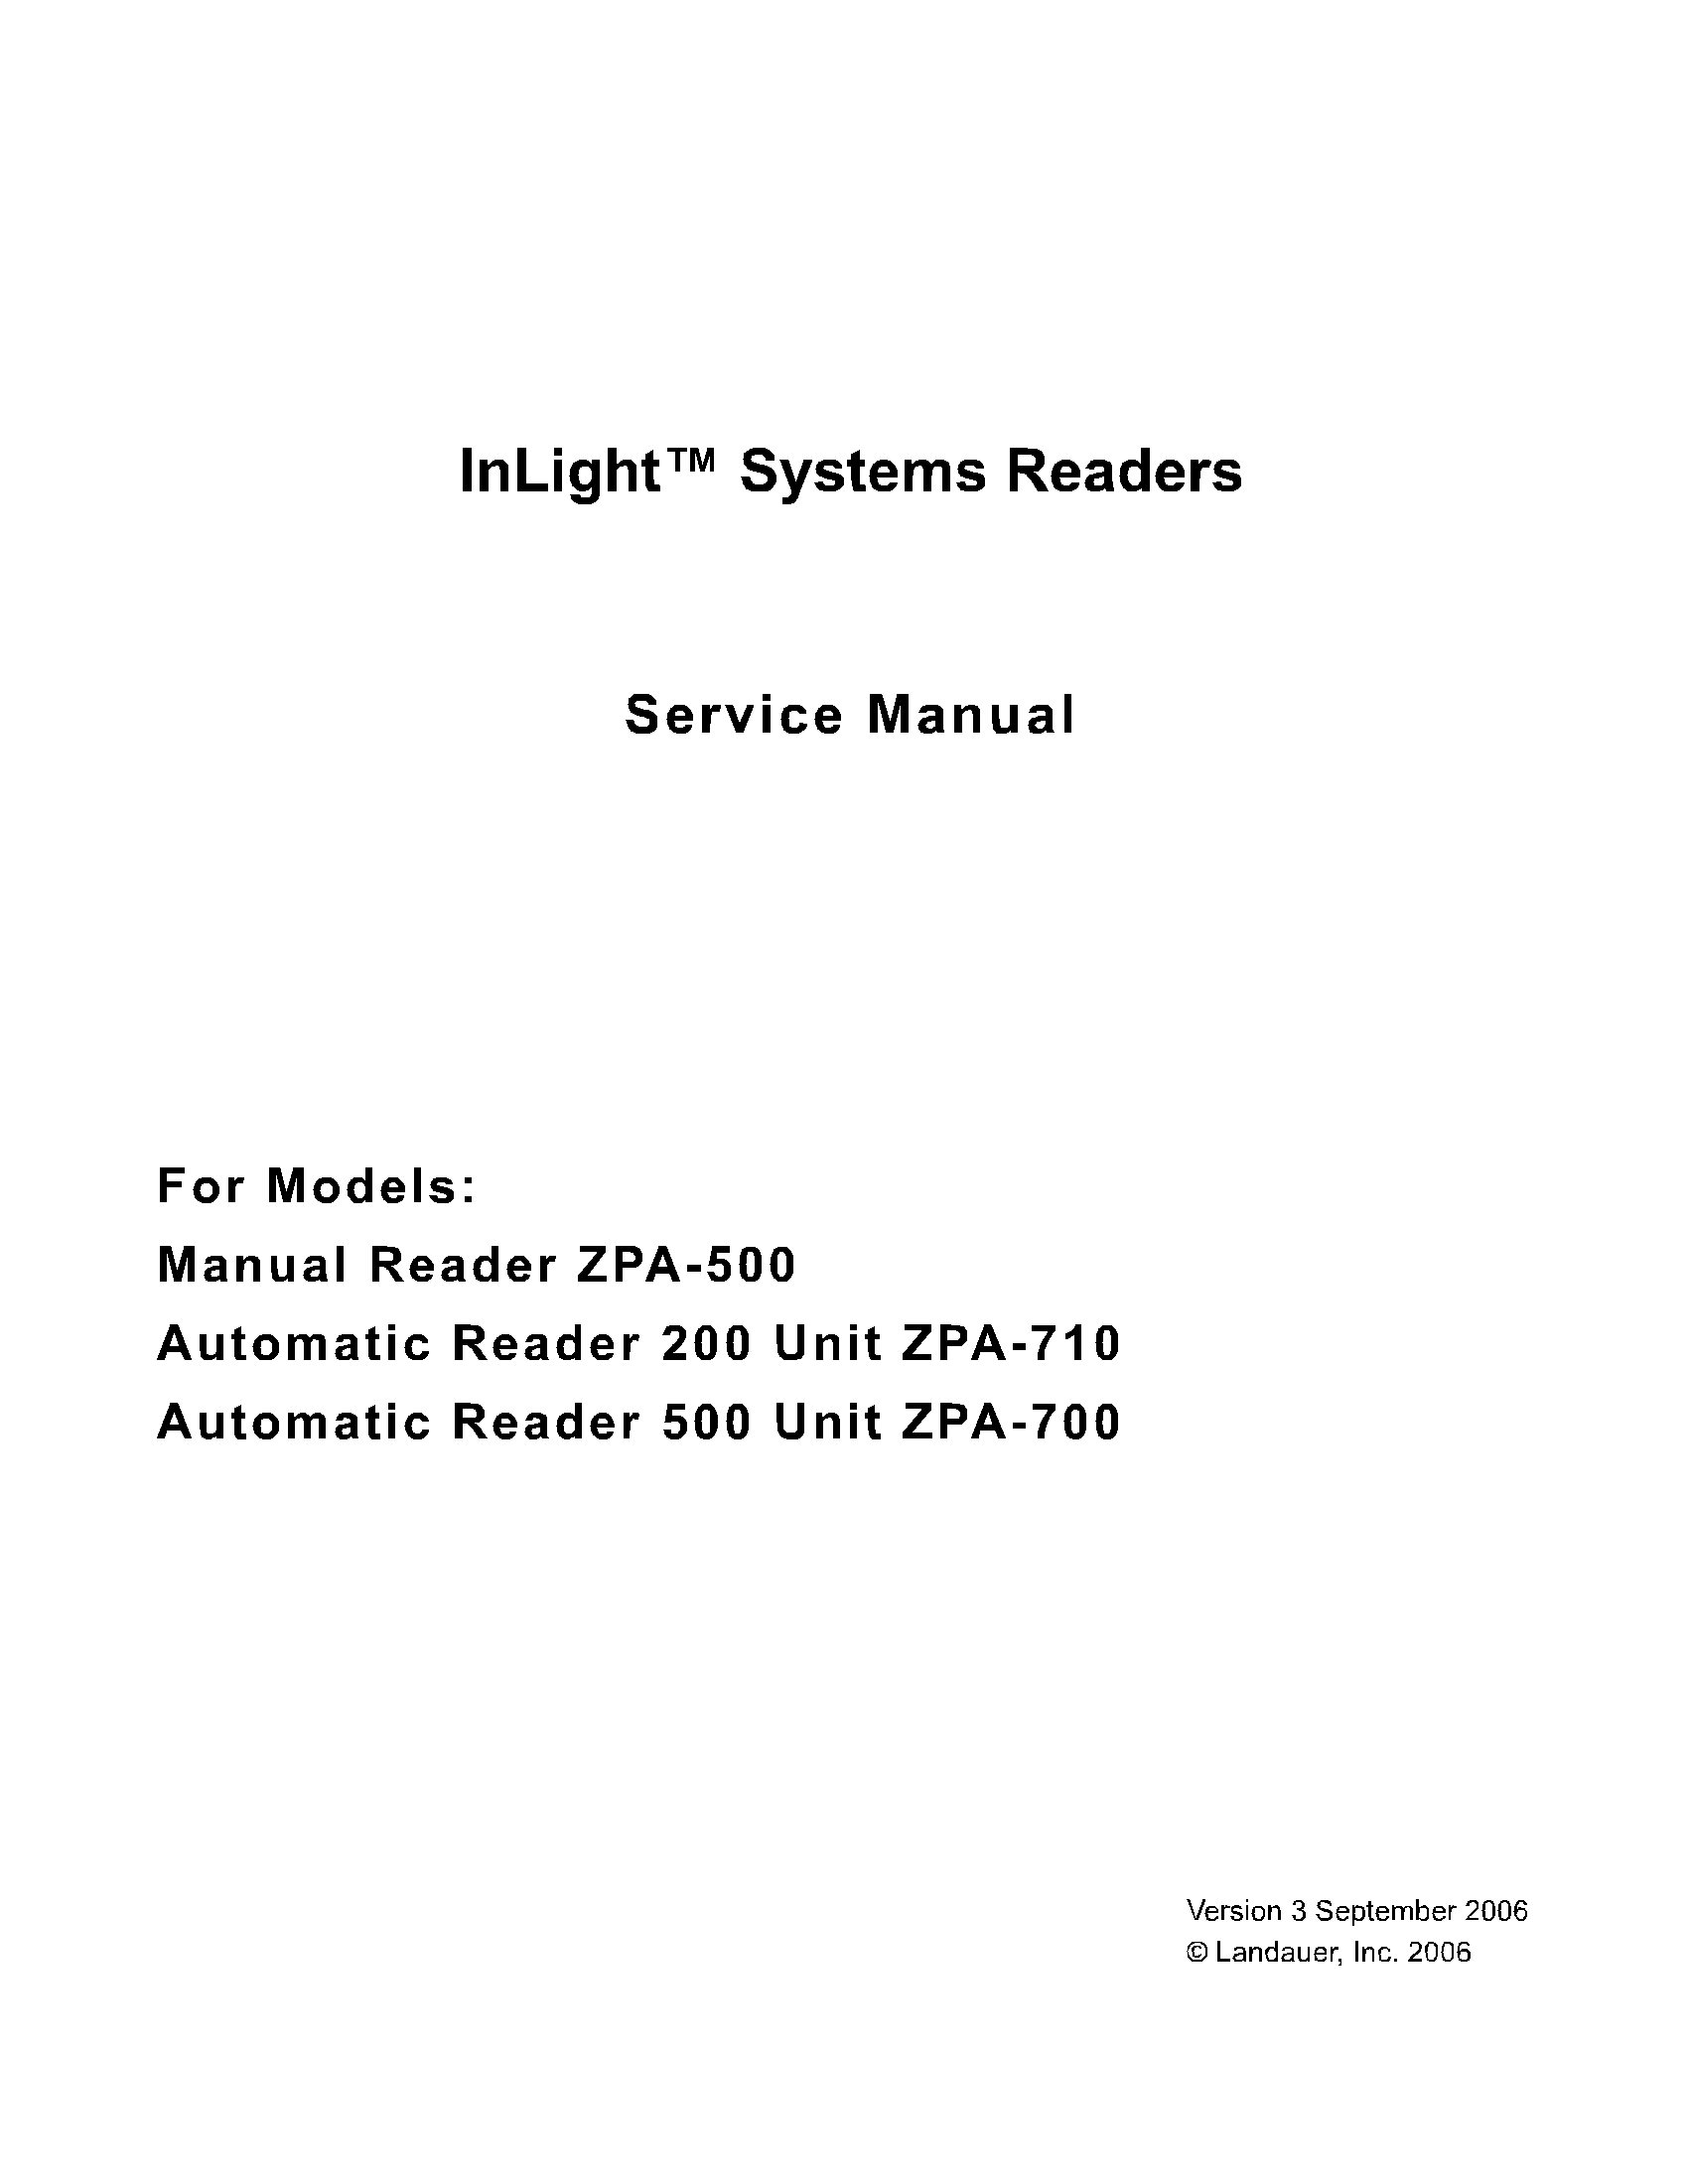 Biocon service manual click here array service manual u2013 page 6 u2013 golden biomed rh goldenbiomed com fandeluxe Images